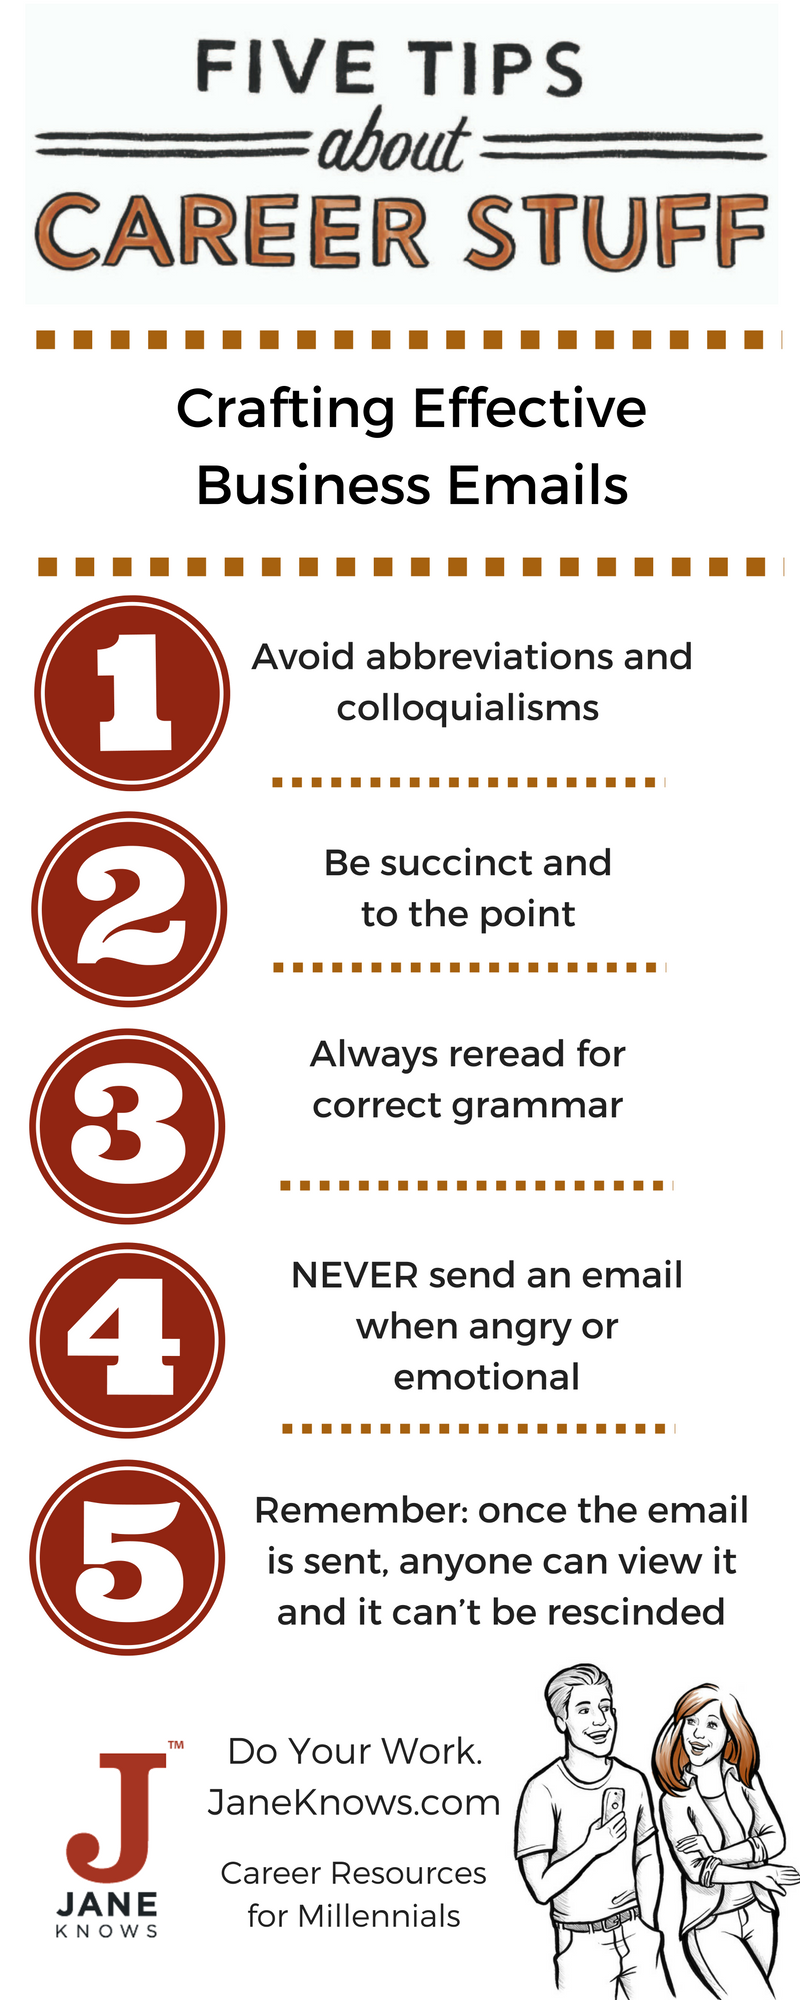 Crafting Effective Business Emails - Infographic